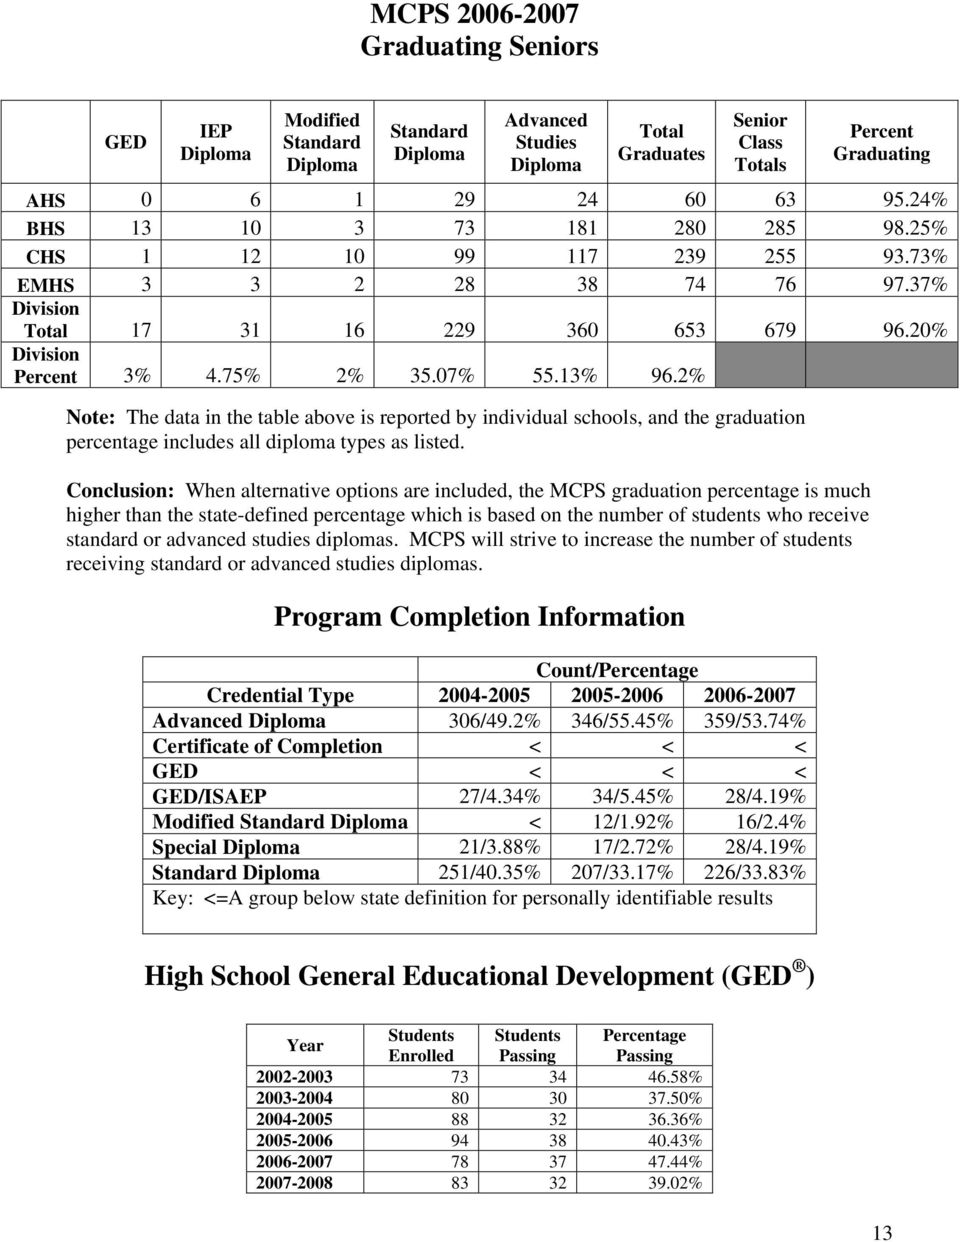 2% Note: The data in the table above is reported by individual schools, and the graduation percentage includes all diploma types as listed.